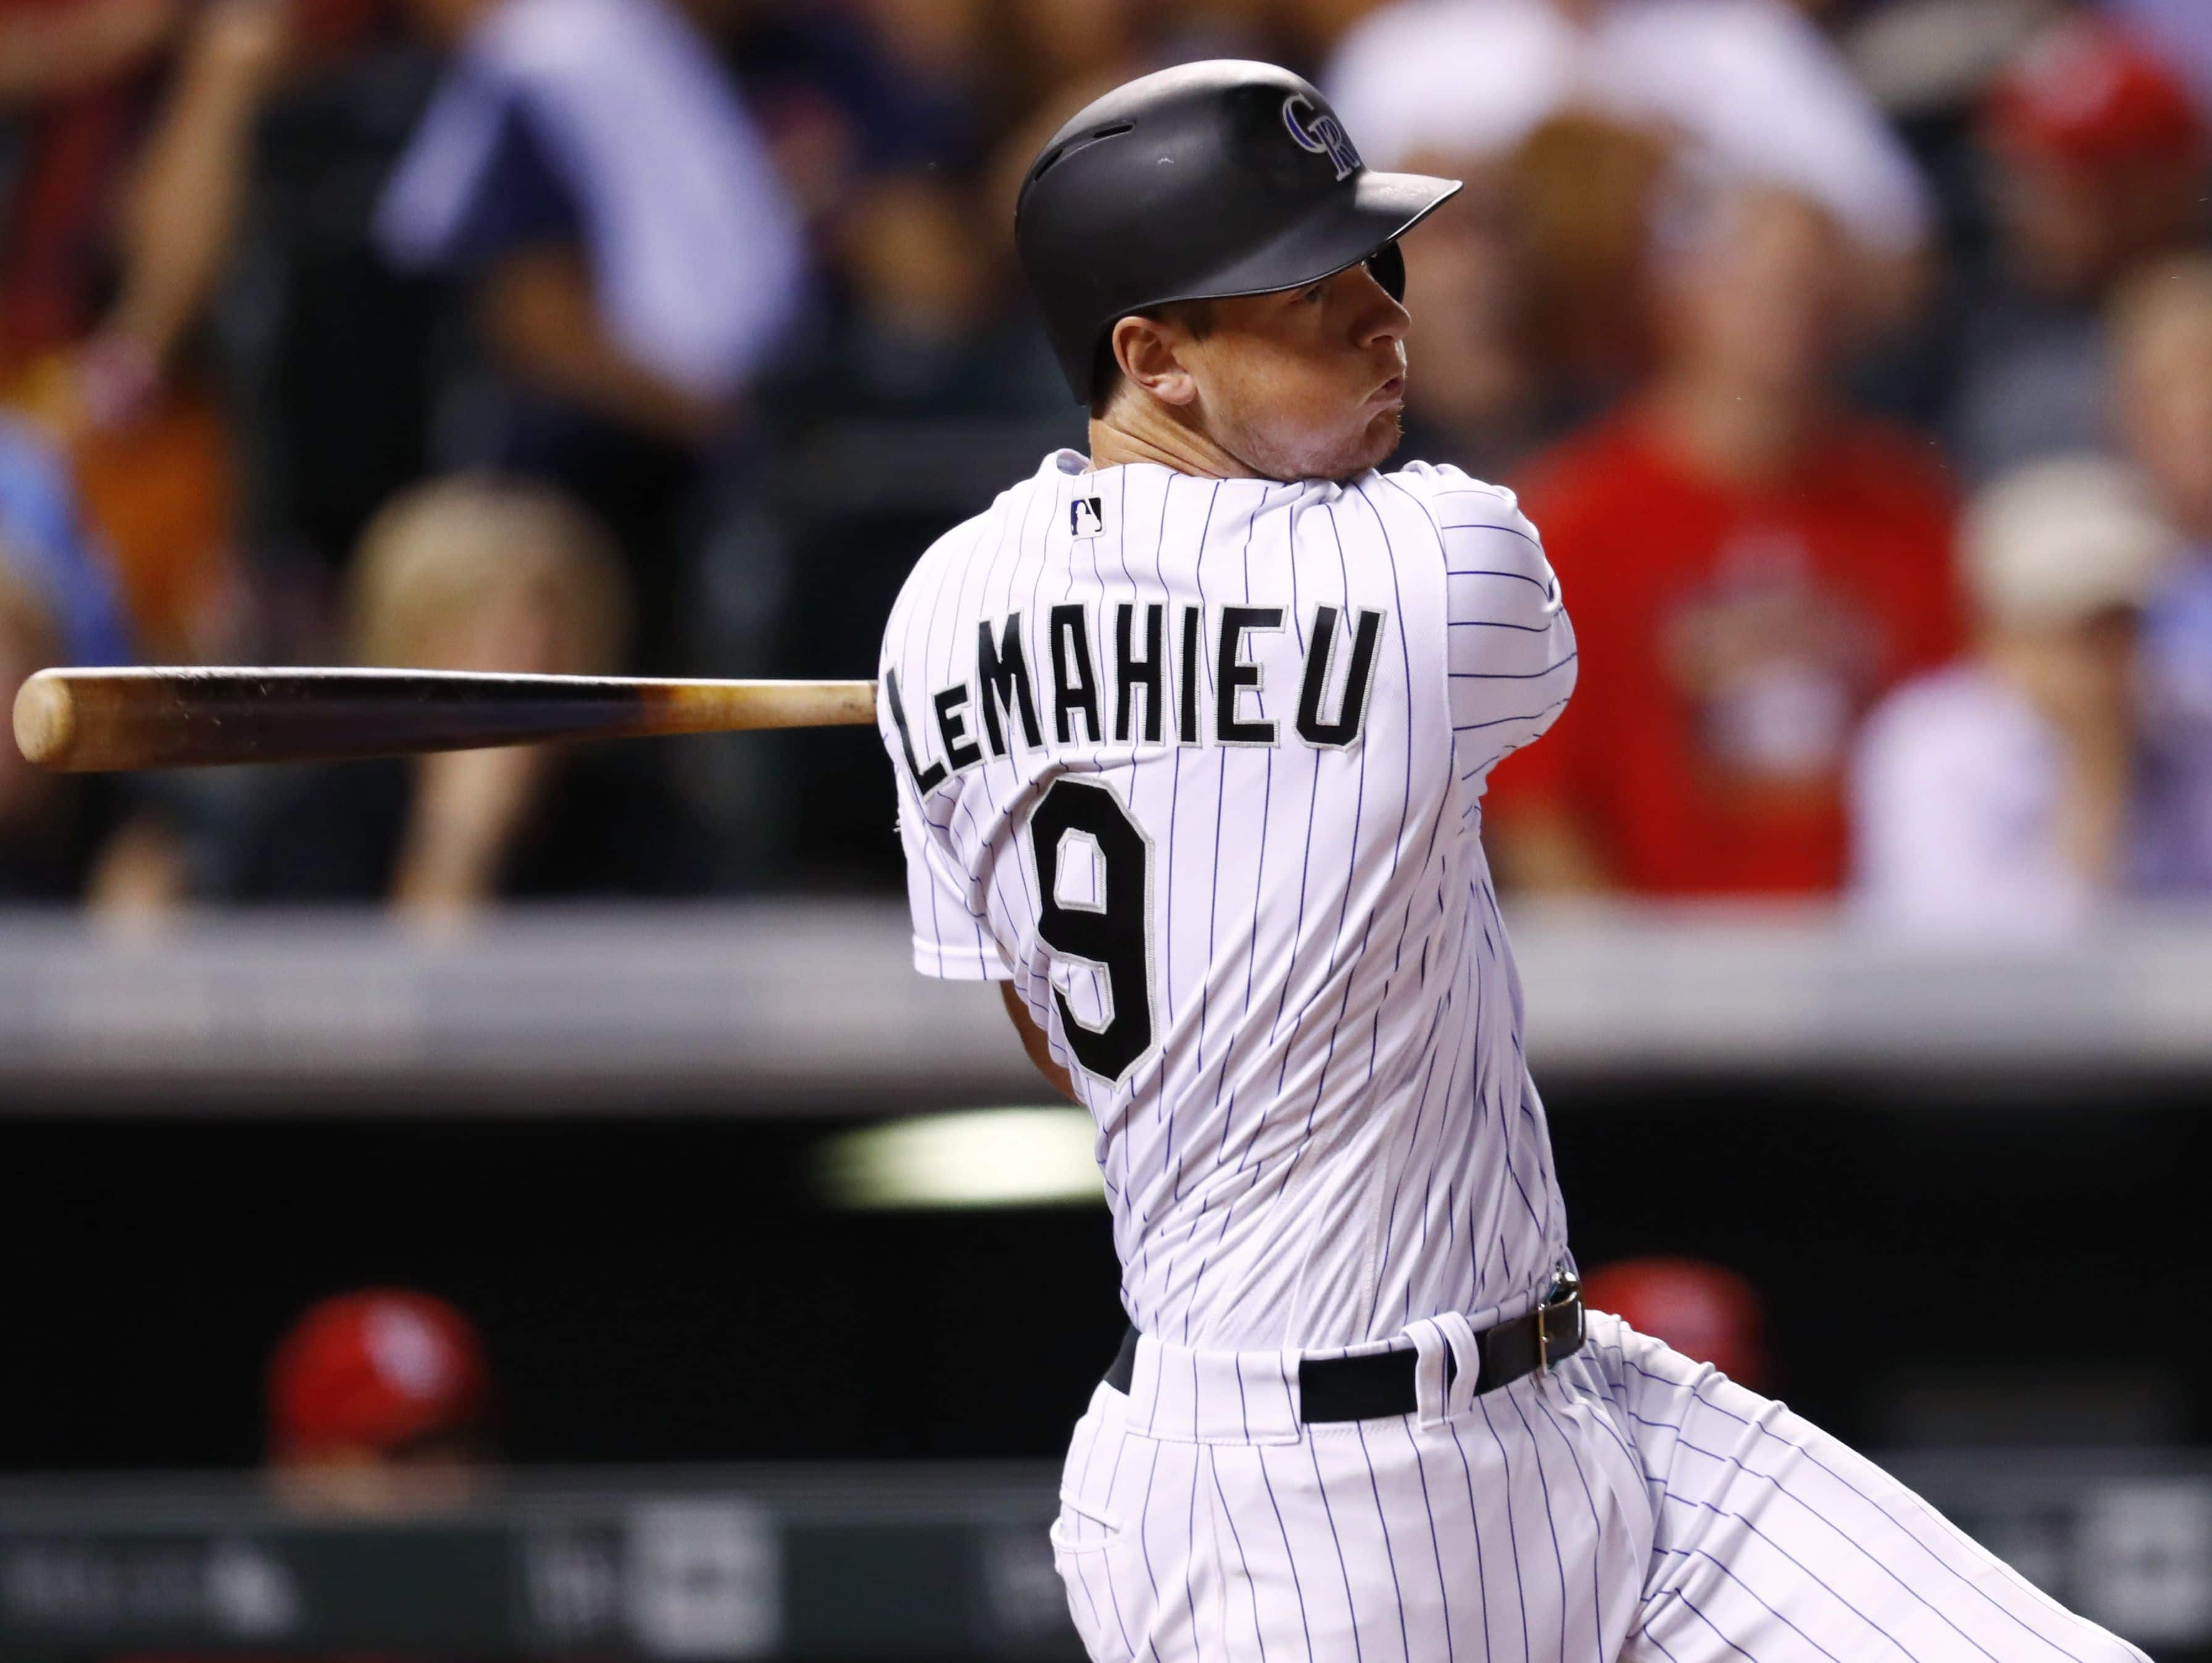 Colorado Rockies' DJ LeMahieu follows the flight of his double off St. Louis Cardinals pitcher Michael Wacha in the seventh inning Sept. 20, 2016 in Denver.